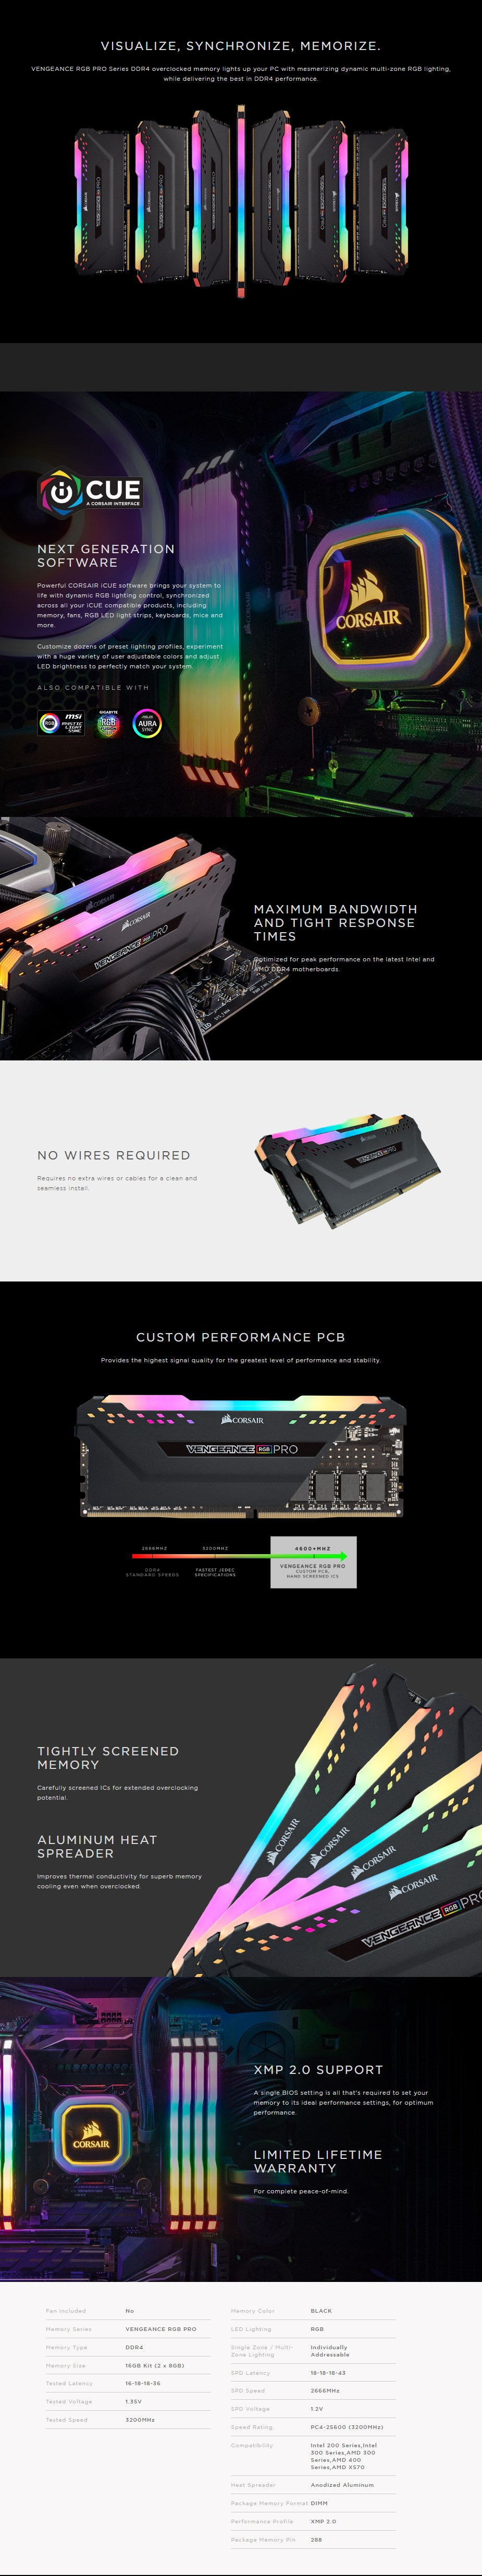 Corsair Vengeance RGB PRO 16GB (2x 8GB) DDR4 3200MHz Memory - Black - Overview 1